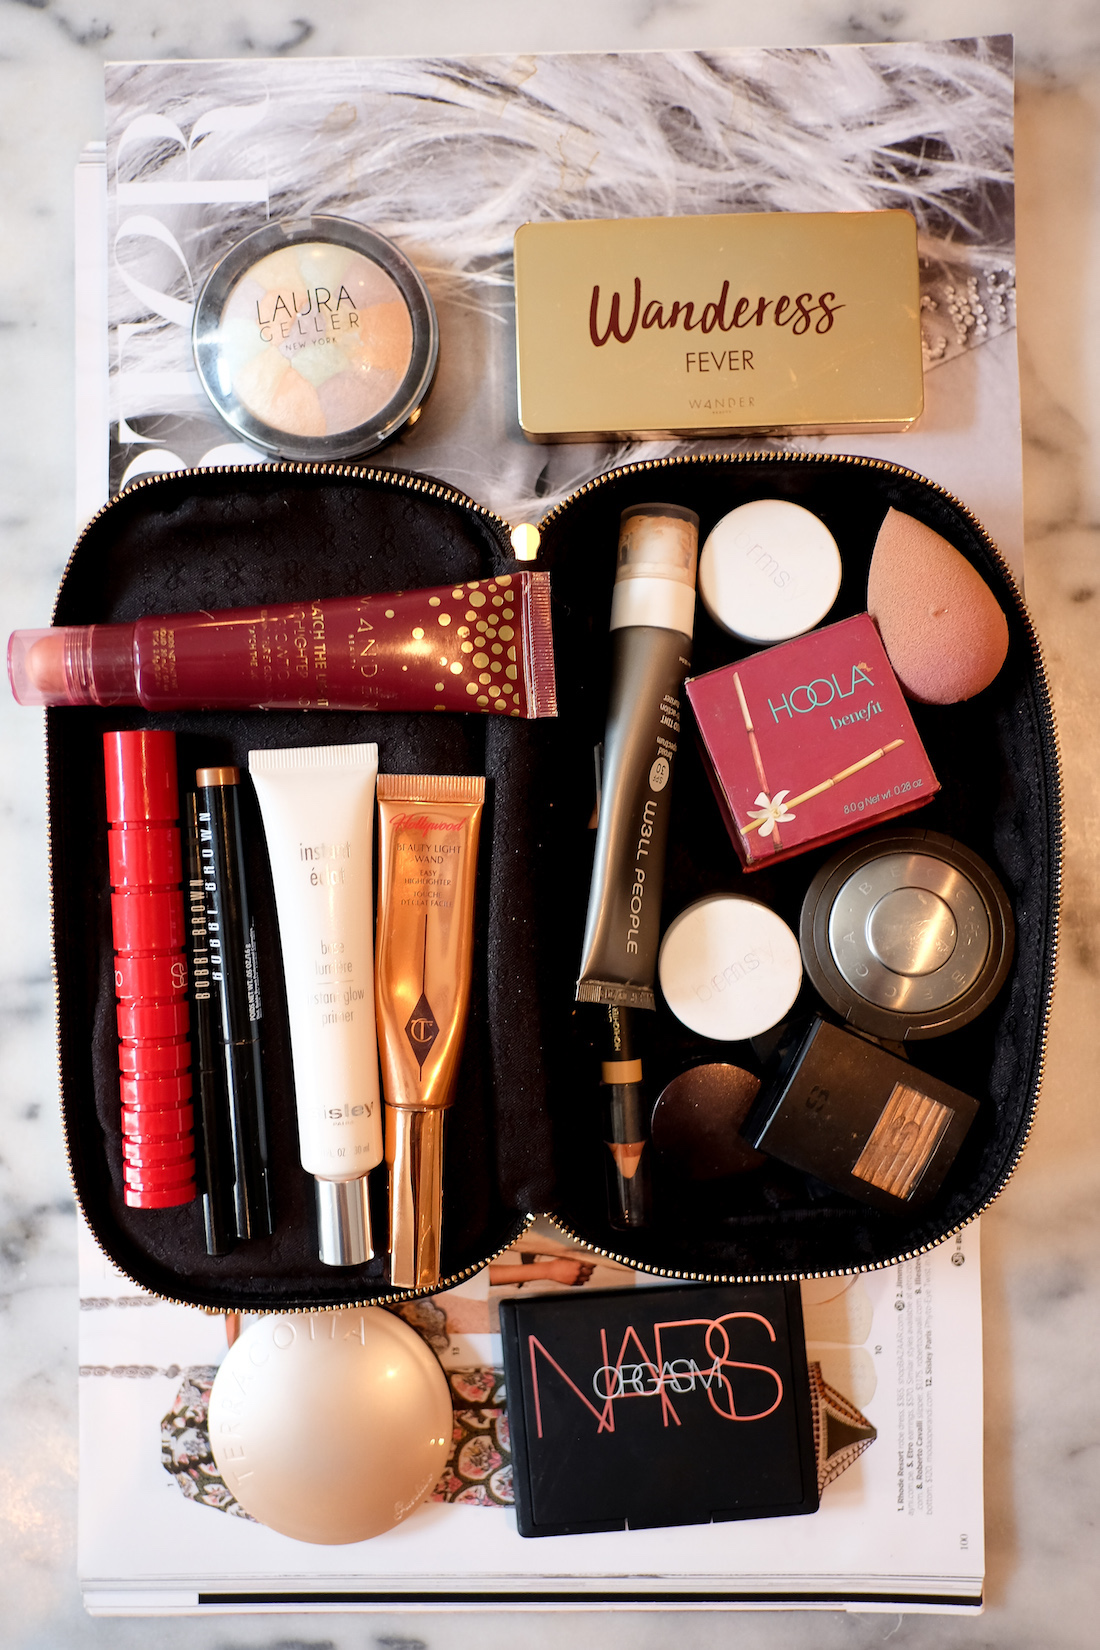 About a month ago I finally splurged on this Anya Hindmarch makeup bag. I d  been considering it for some time – several friends have it and swear by  it 3ae279587a7fb